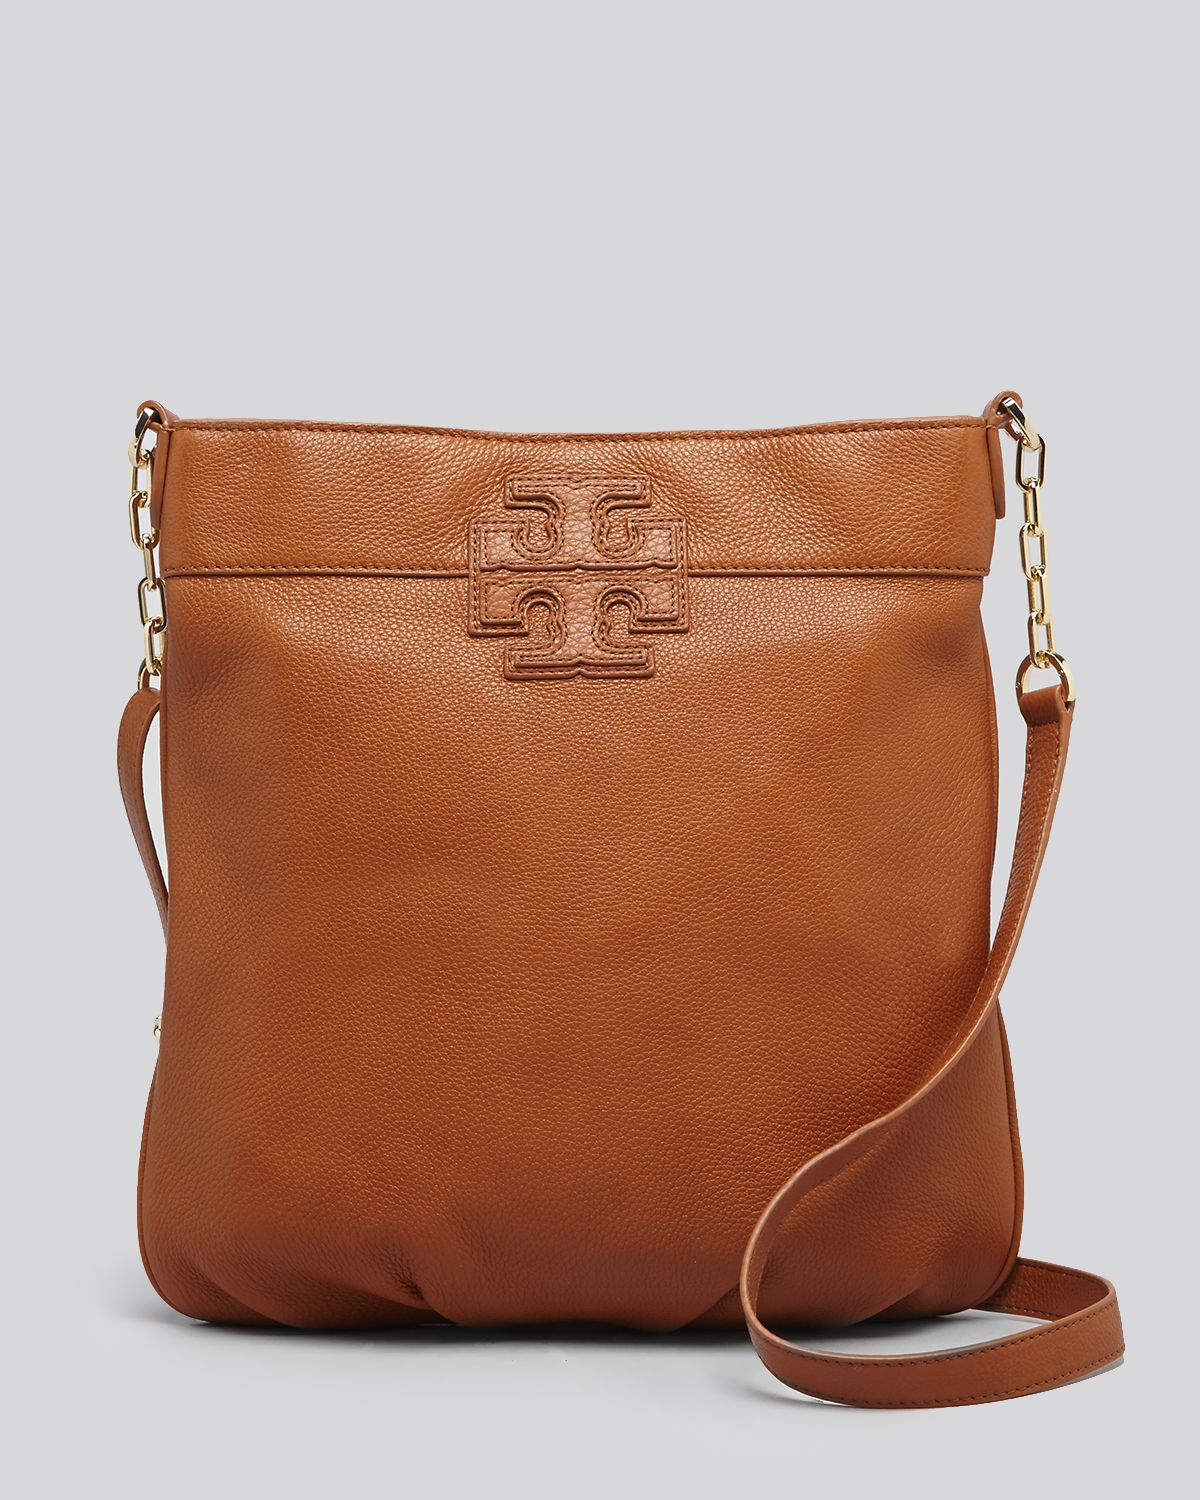 1a8280aeb6e0 Lyst - Tory Burch Crossbody Stacked T Book Bag in Brown